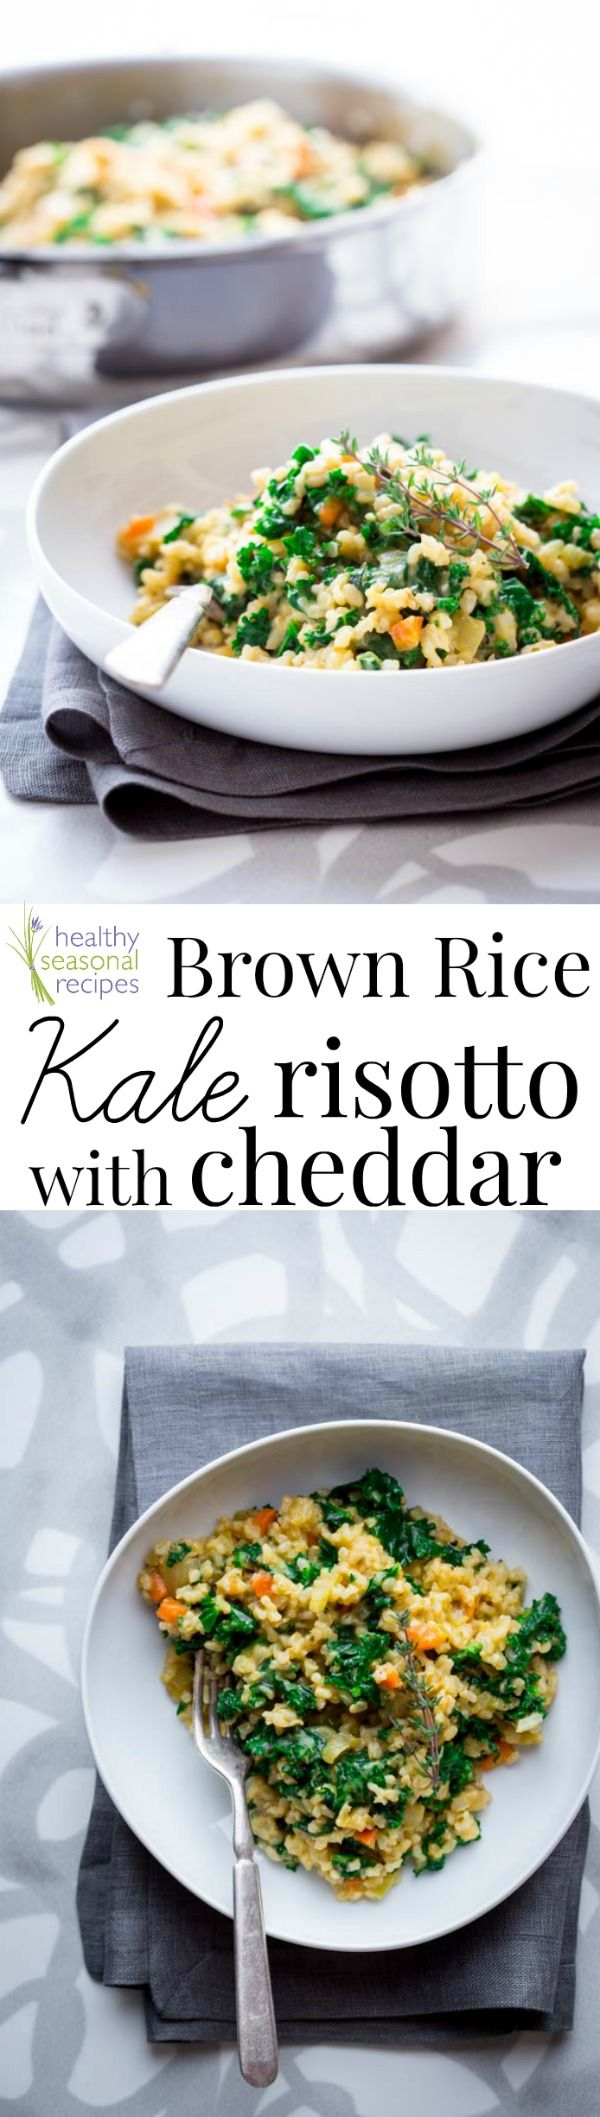 brown rice kale risotto with cheddar - Healthy Seasonal Recipes